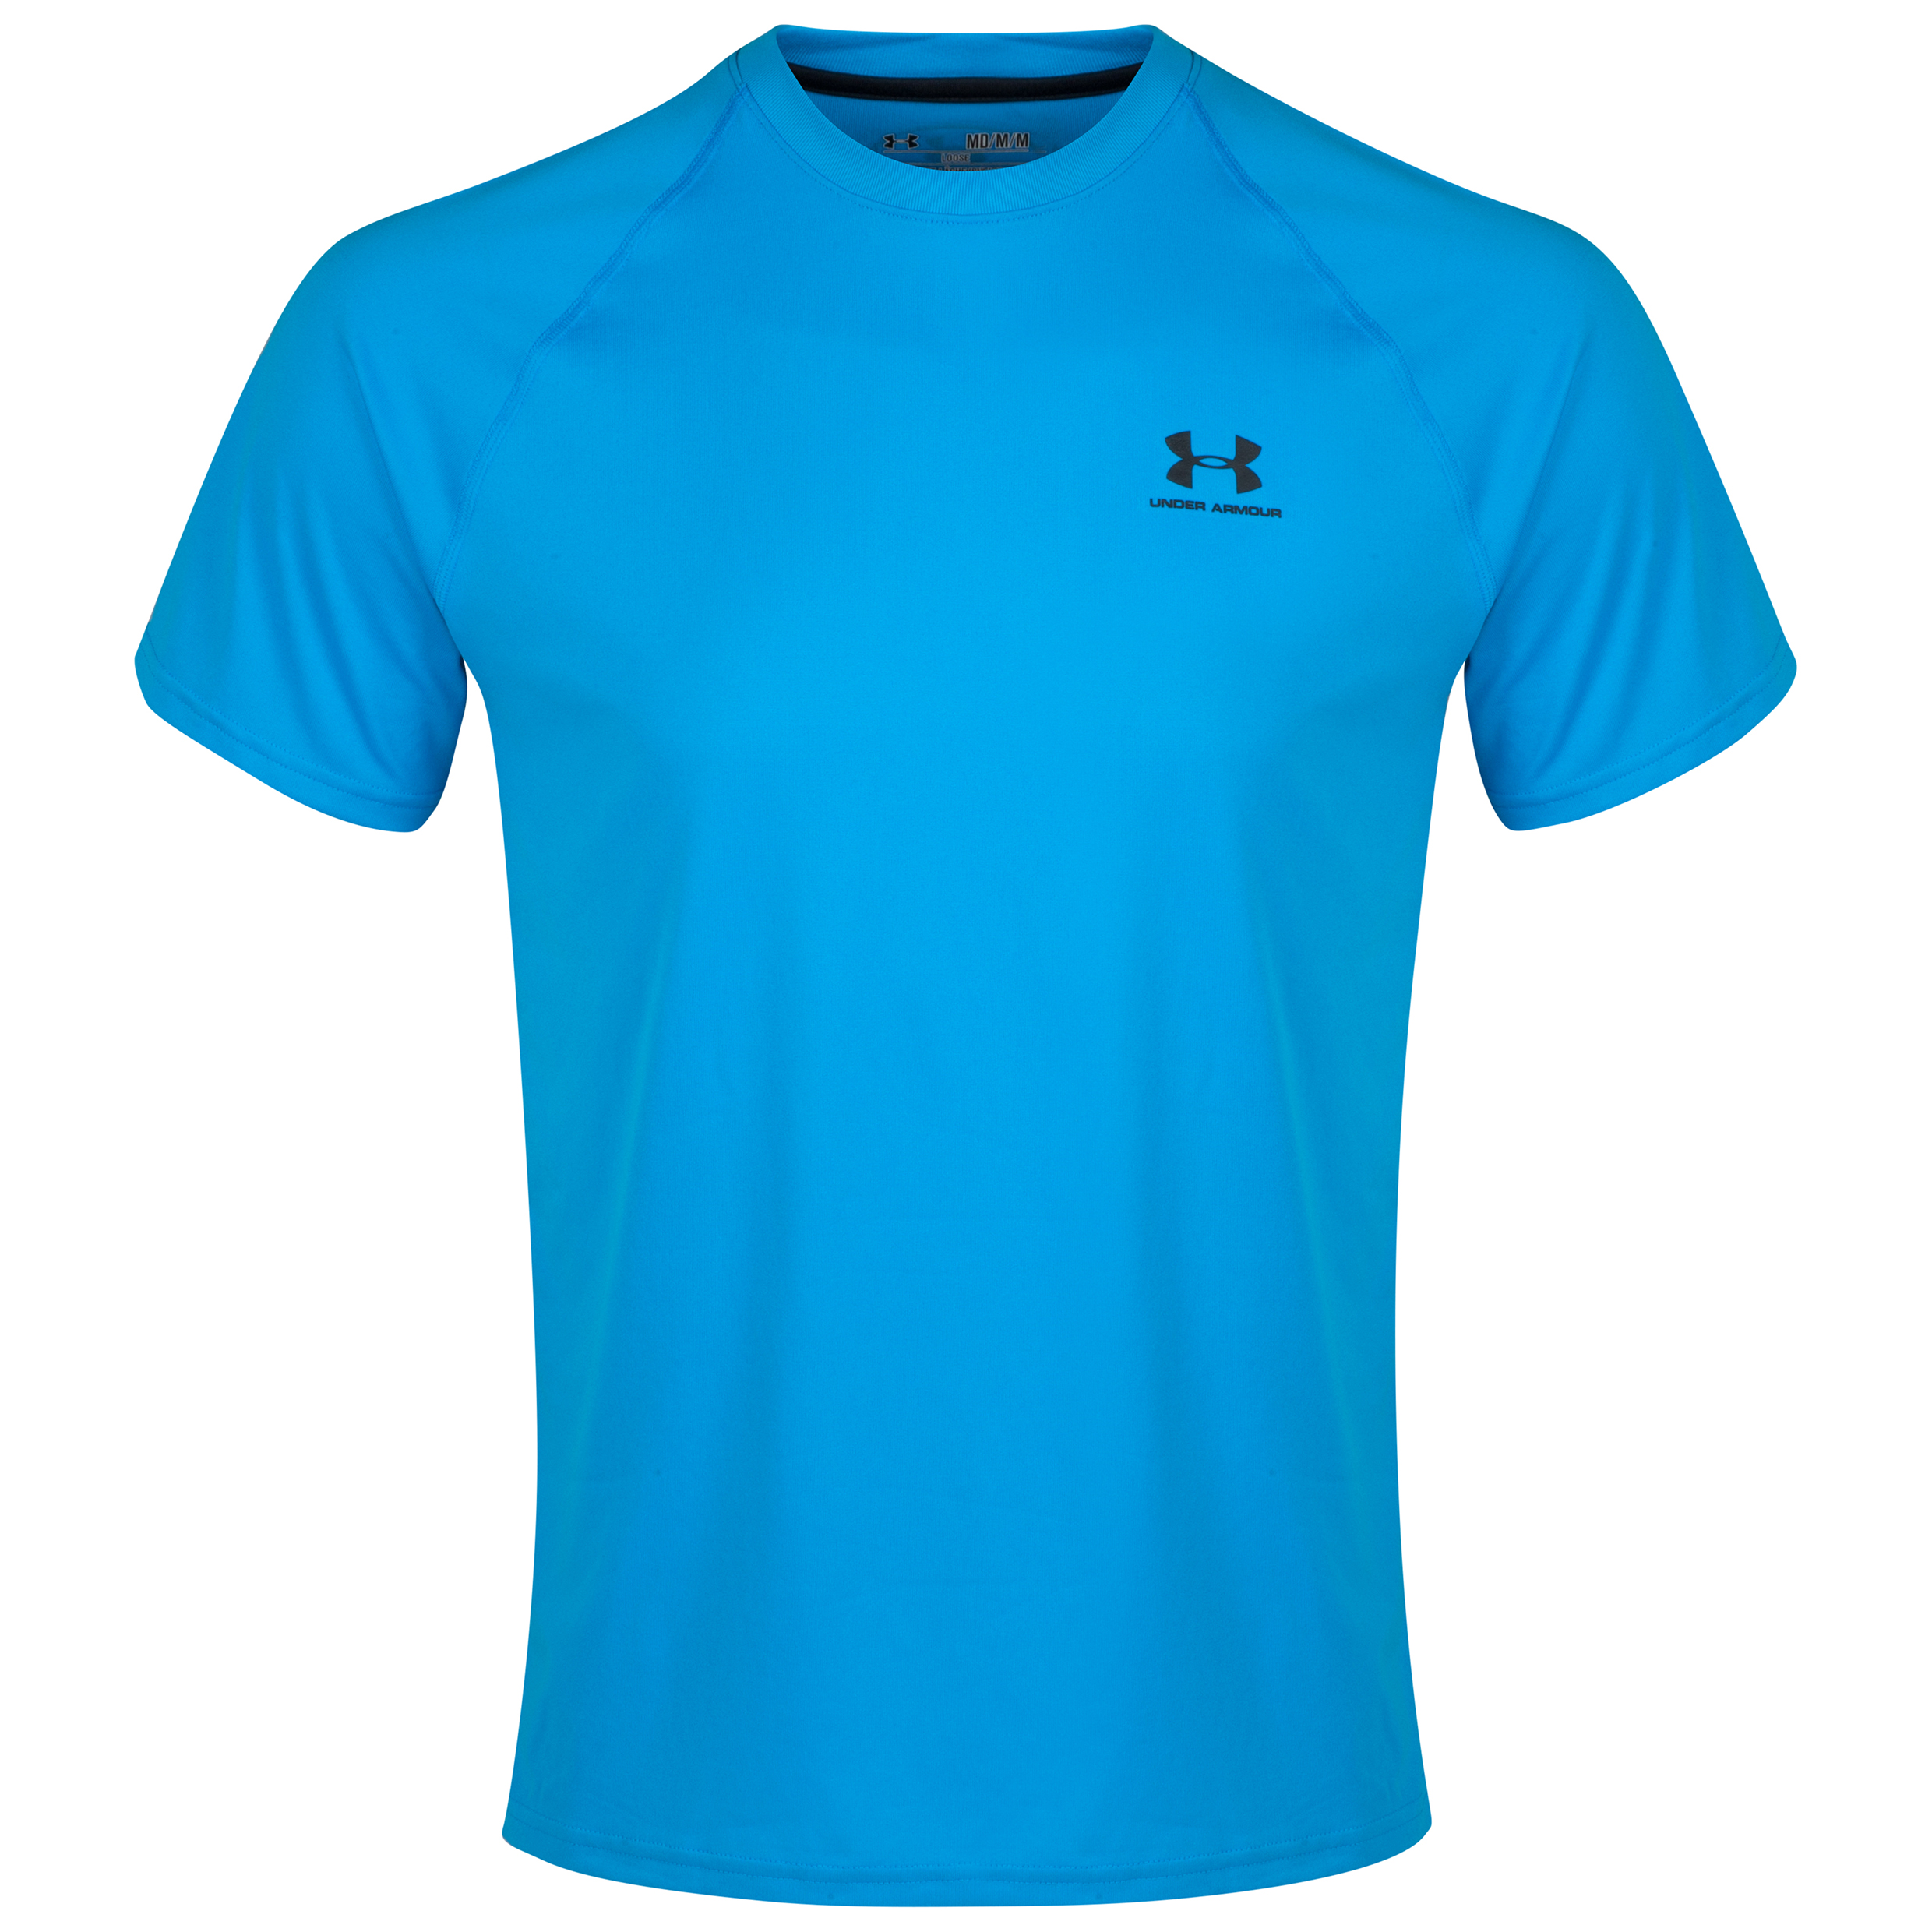 Under Armour Tech T-Shirt Blue